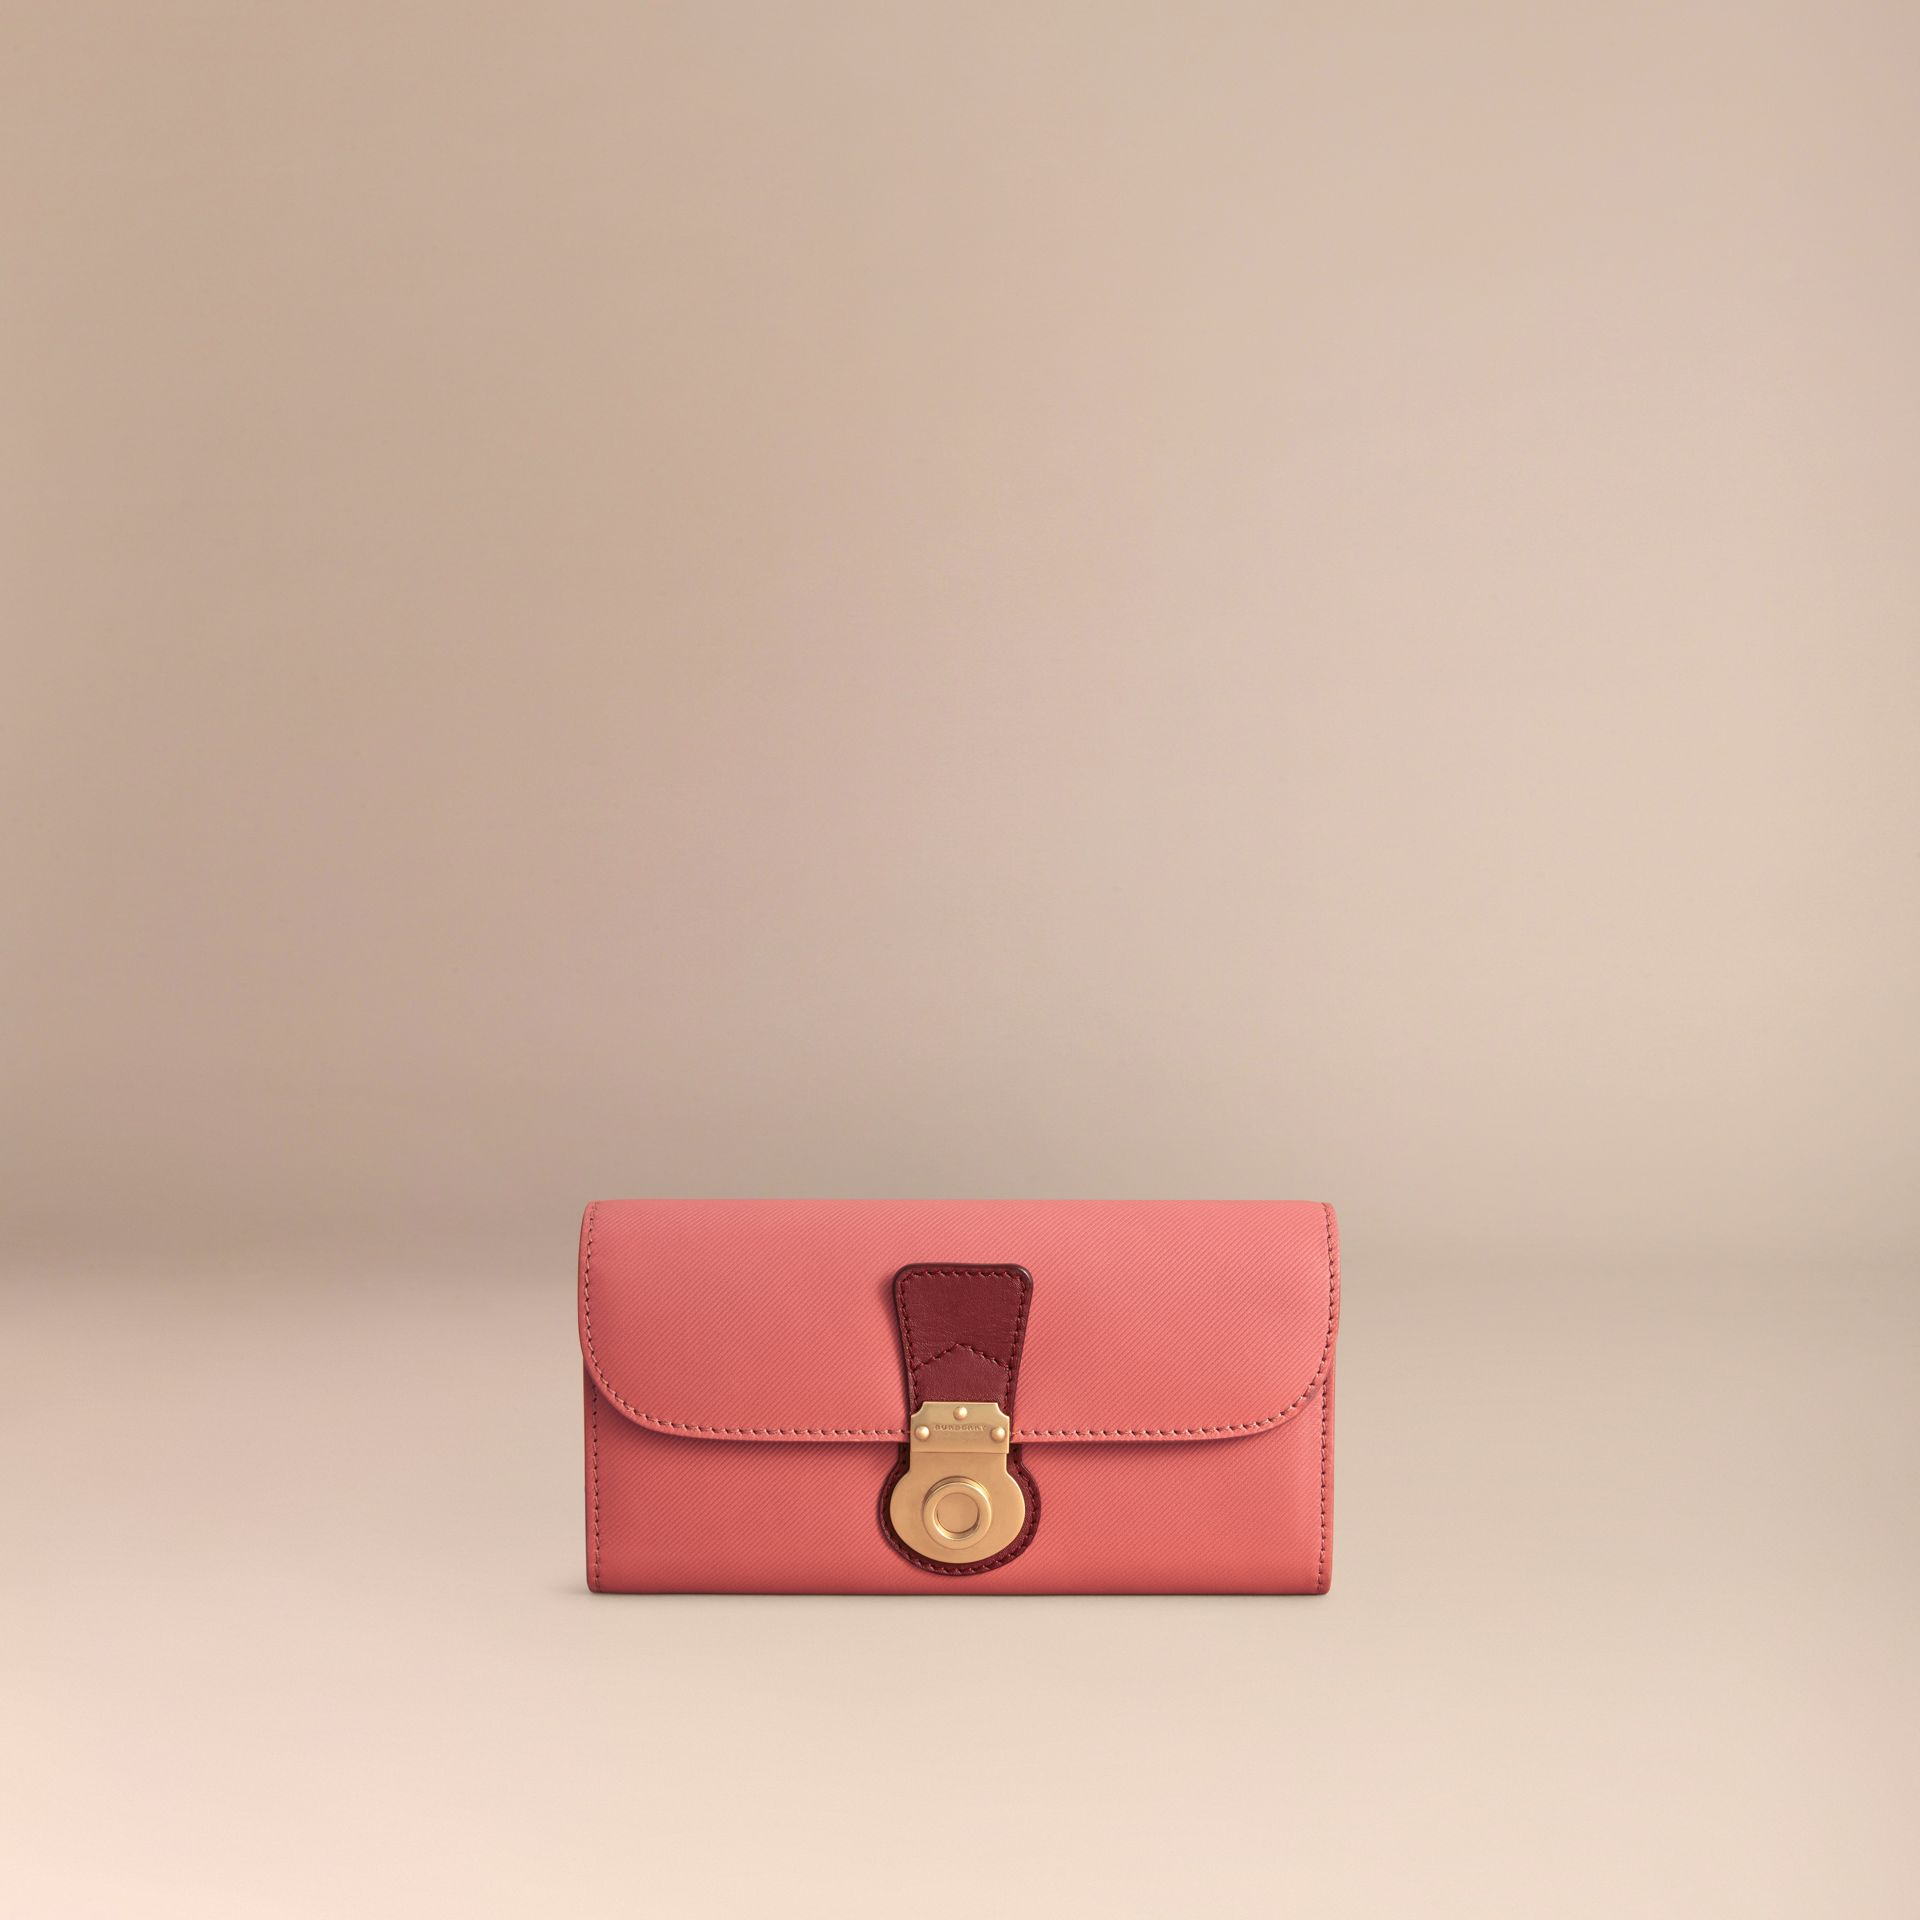 Two-tone Trench Leather Continental Wallet in Blossom Pink/antique Red - Women | Burberry United Kingdom - gallery image 5